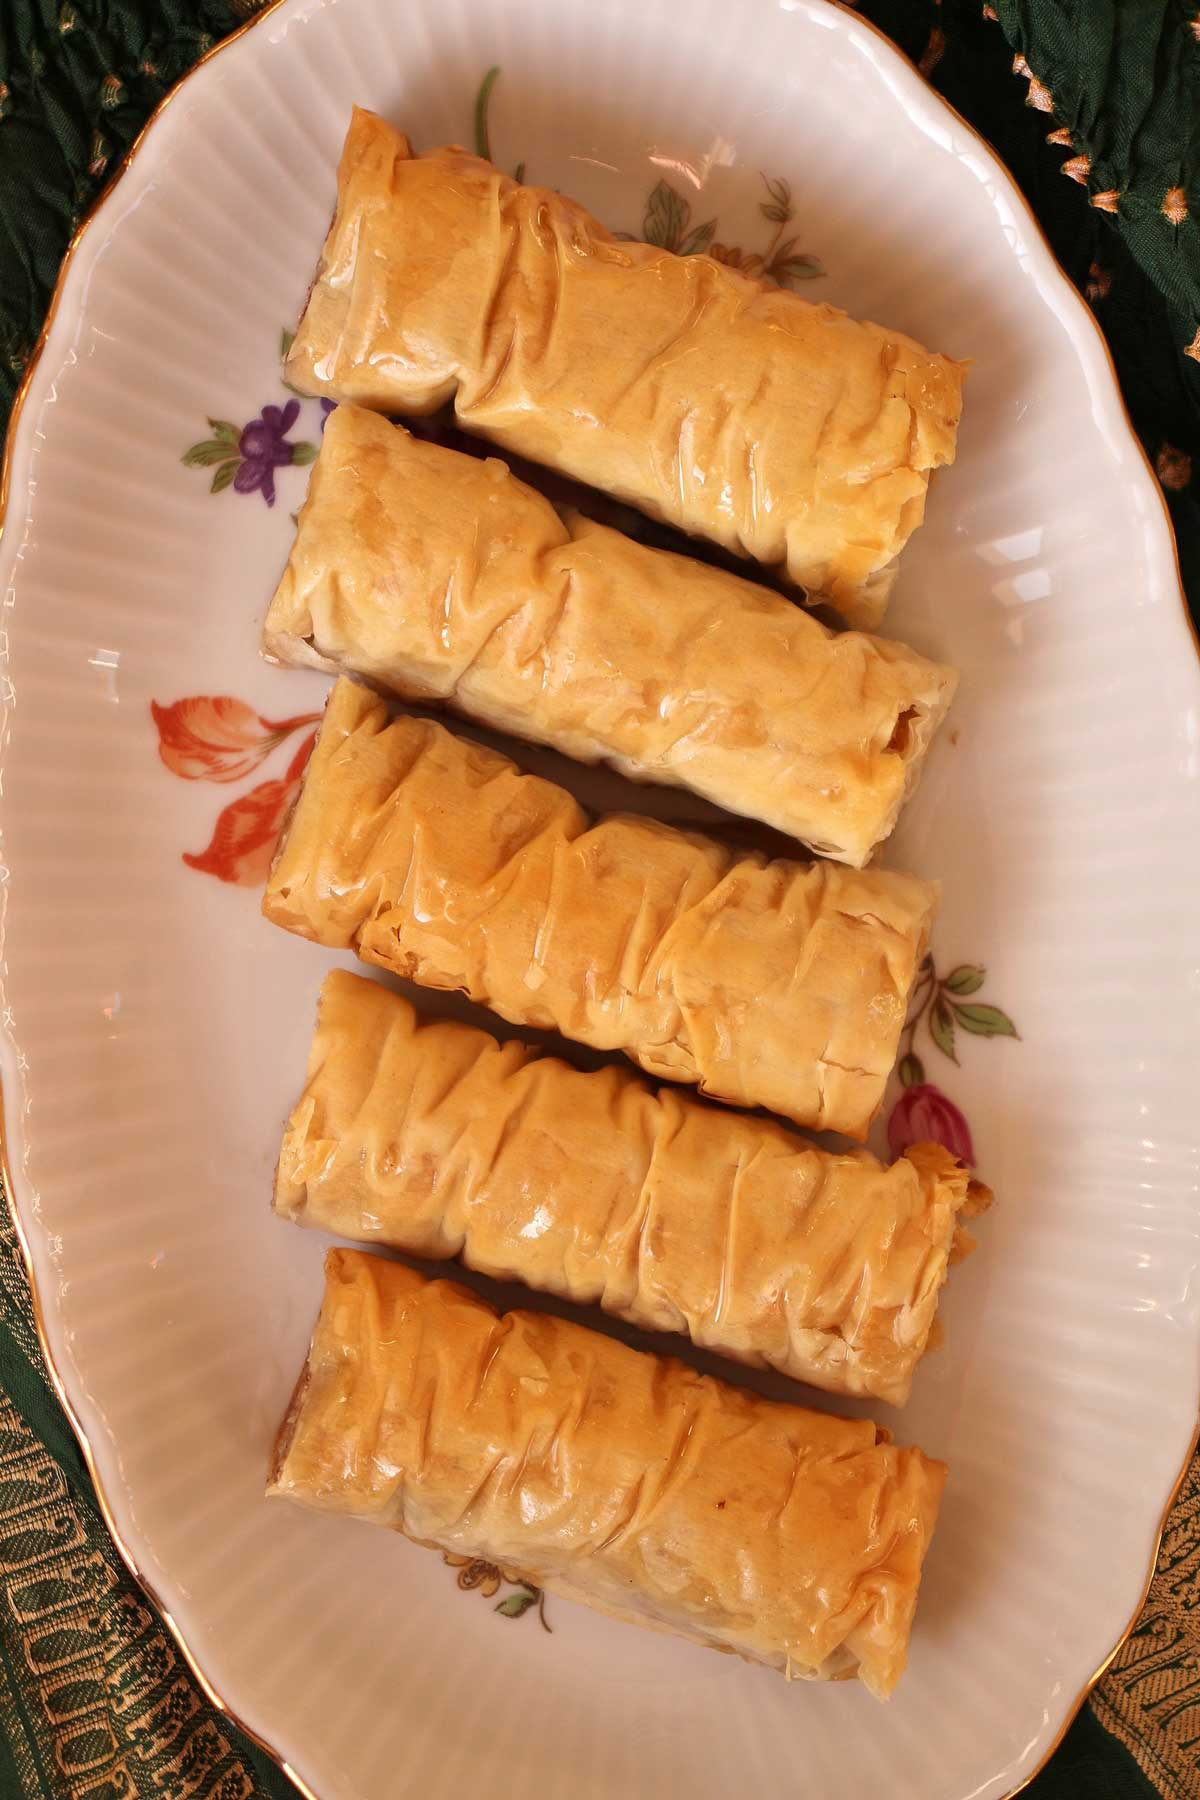 Five rolled baklavas lined up on an oval serving dish.